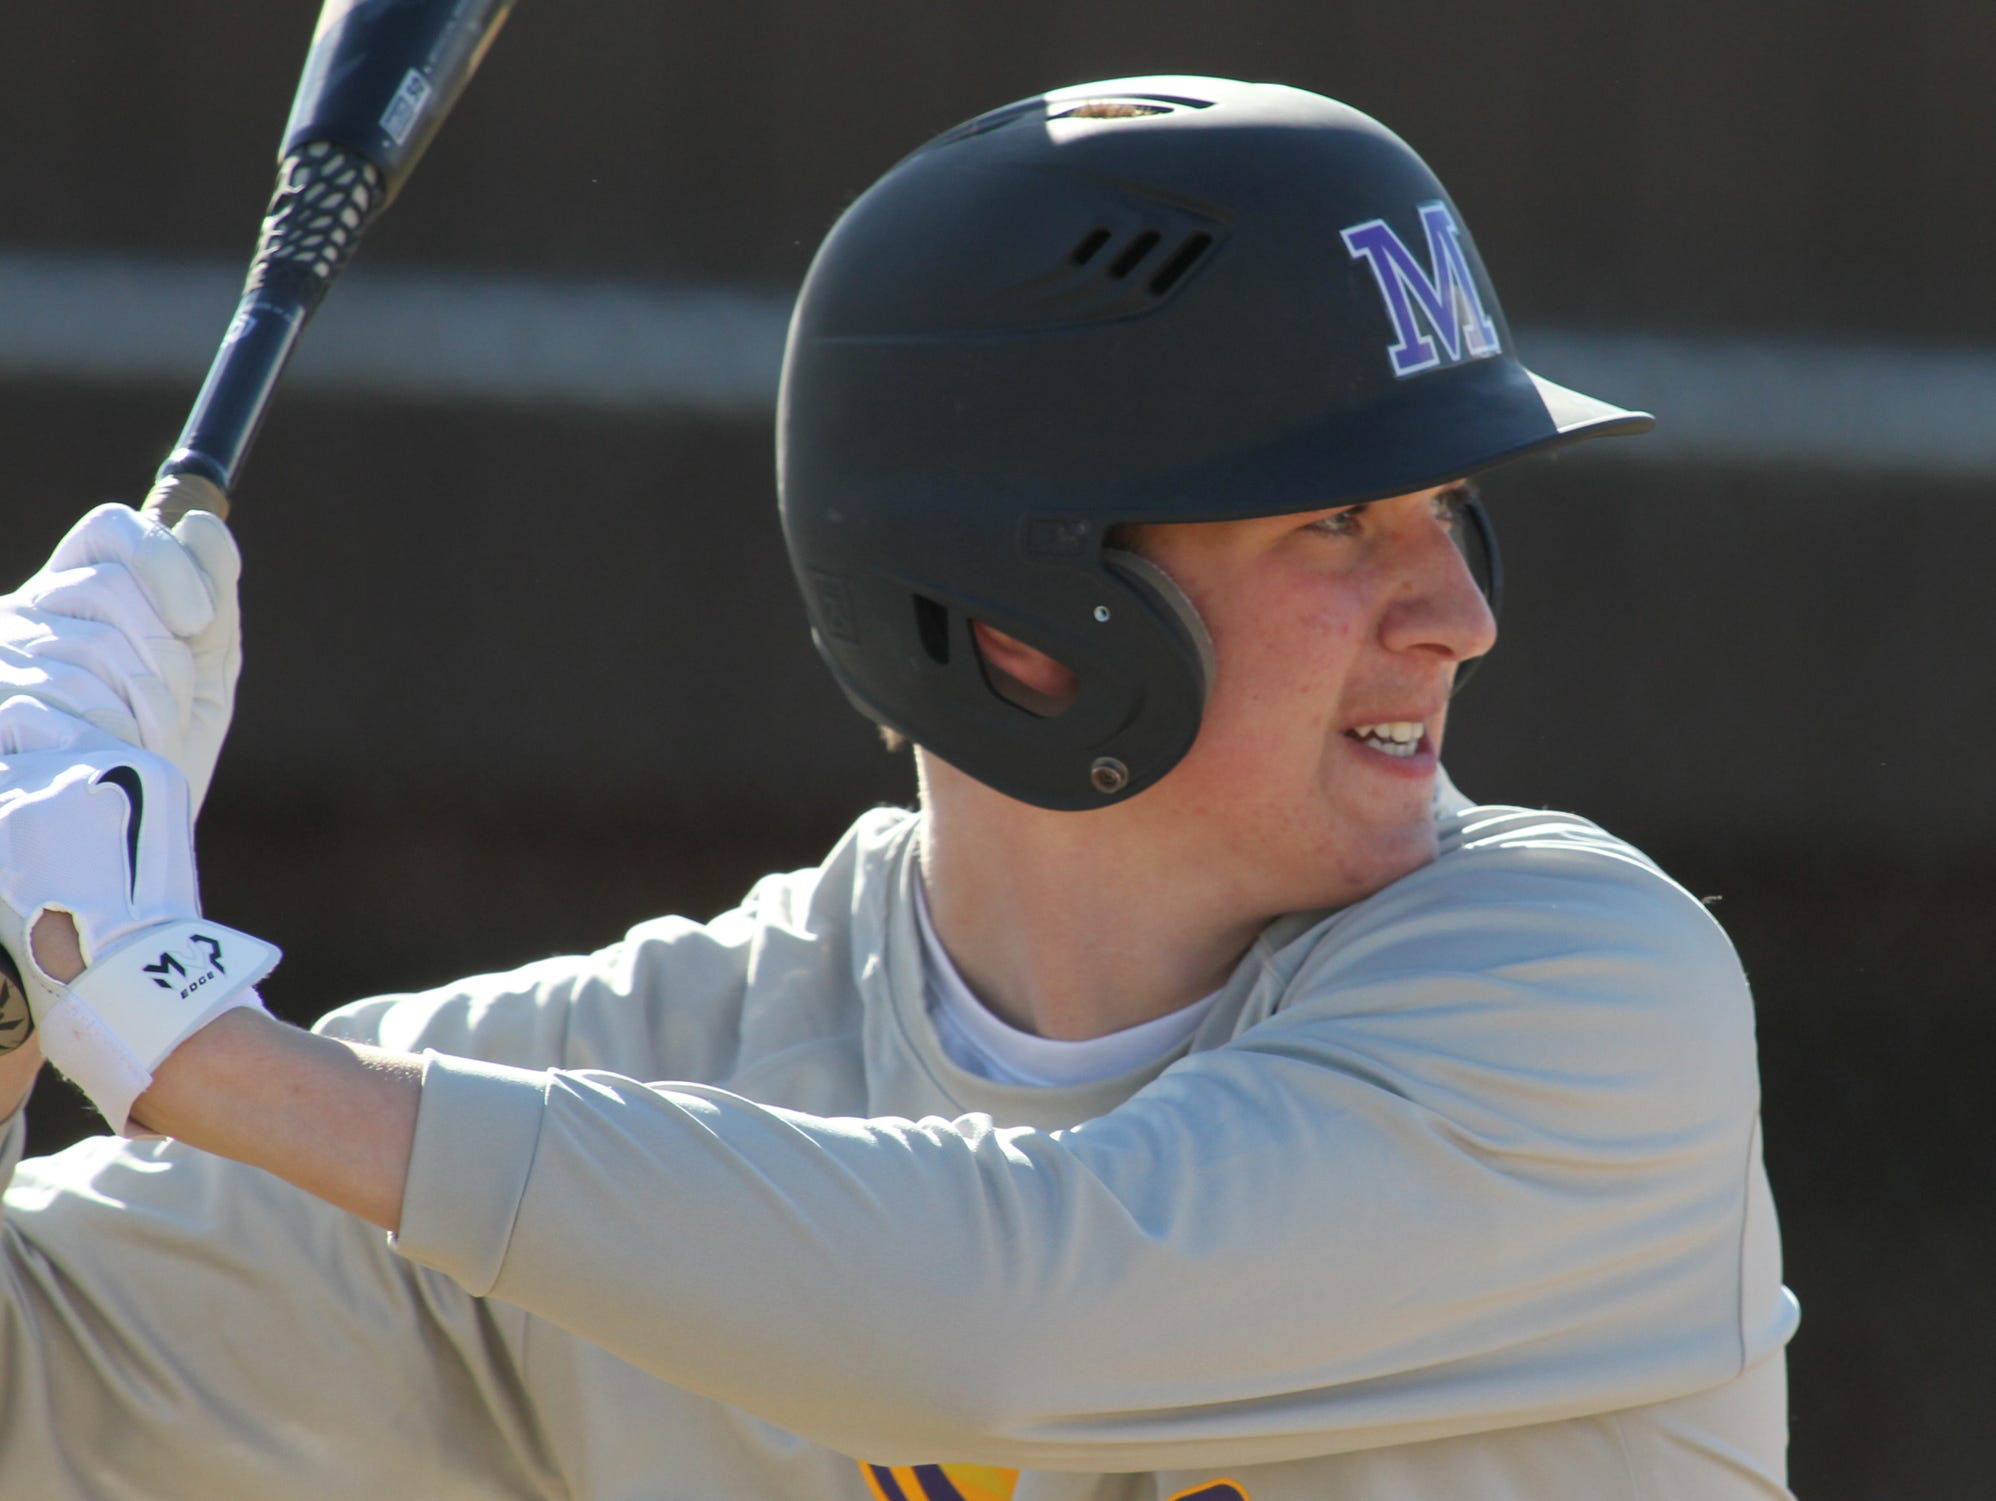 Mosinee's Bryce Graveen tied for the lead in wins in the Great Northern Conference last season, and also had a .526 slugging percentage in conference play.